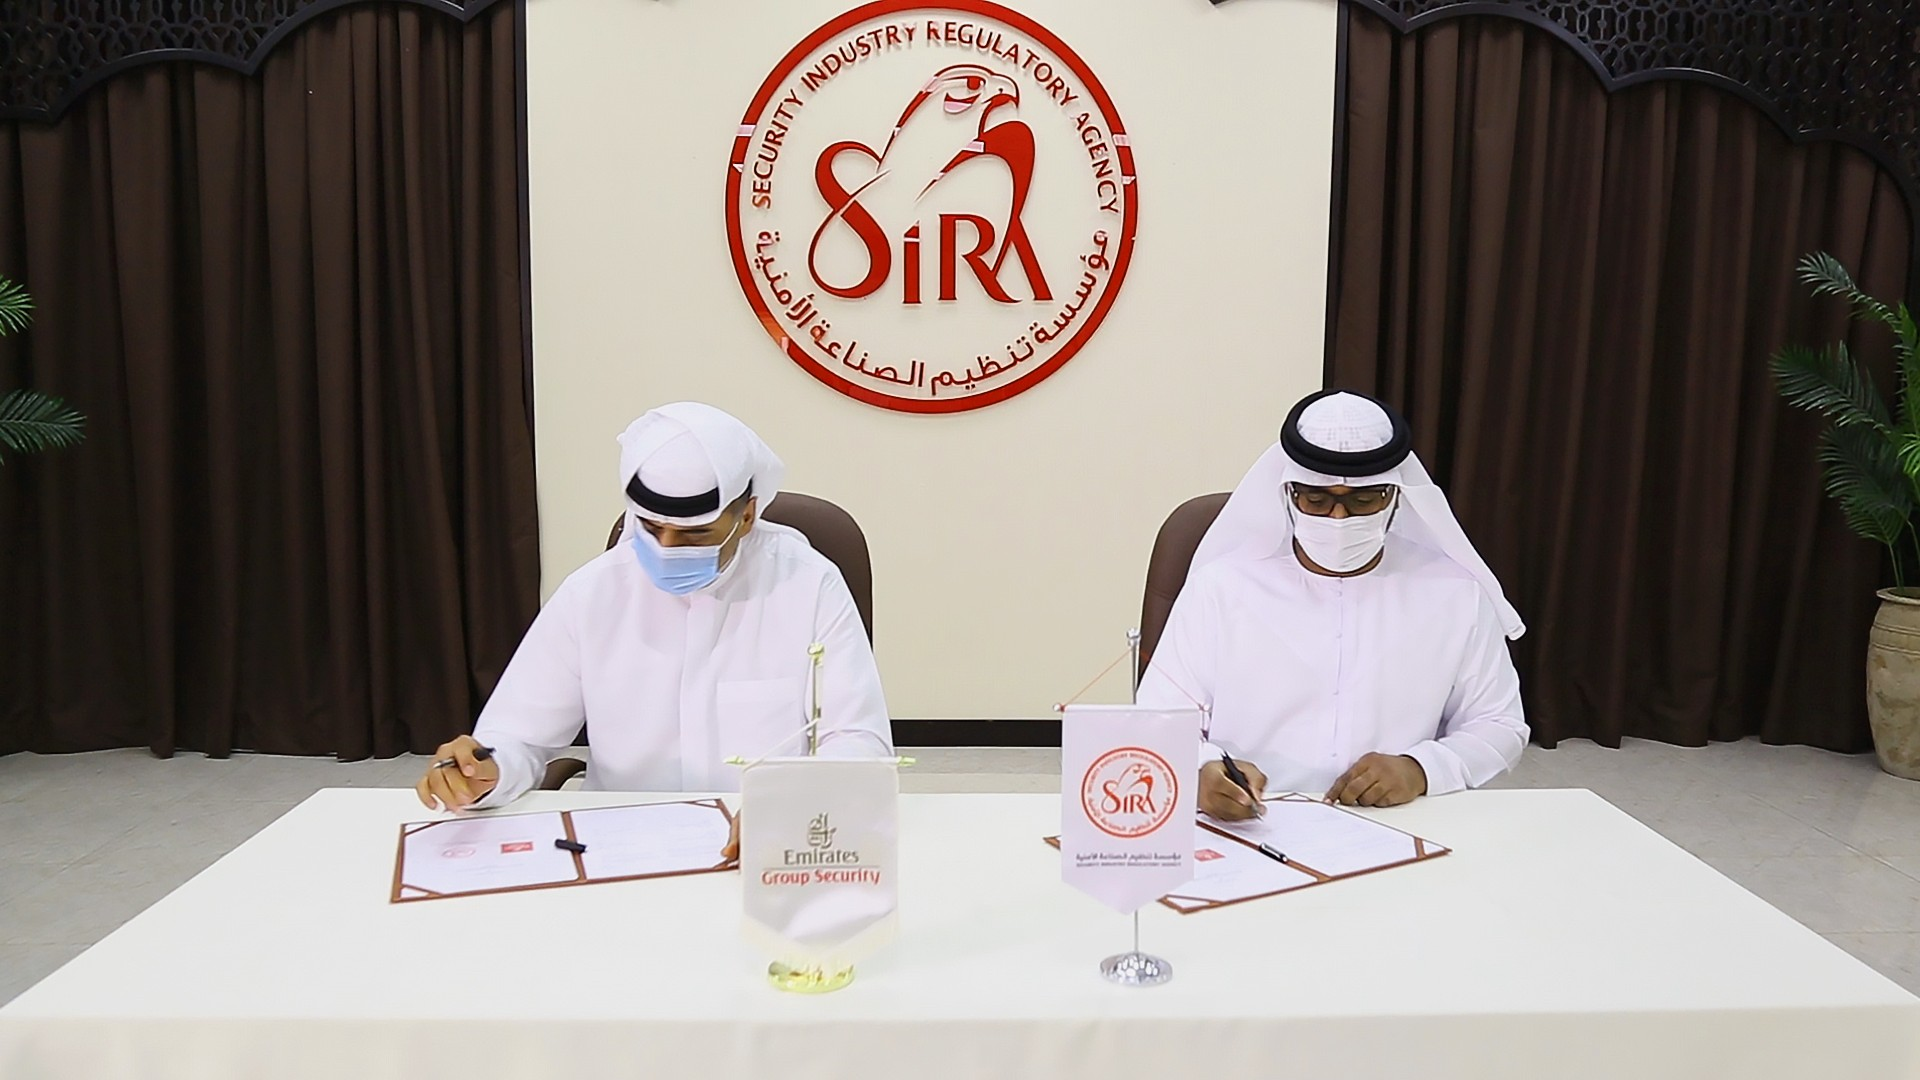 Emirates Group Security signs MoU with (SIRA) to expand cooperation